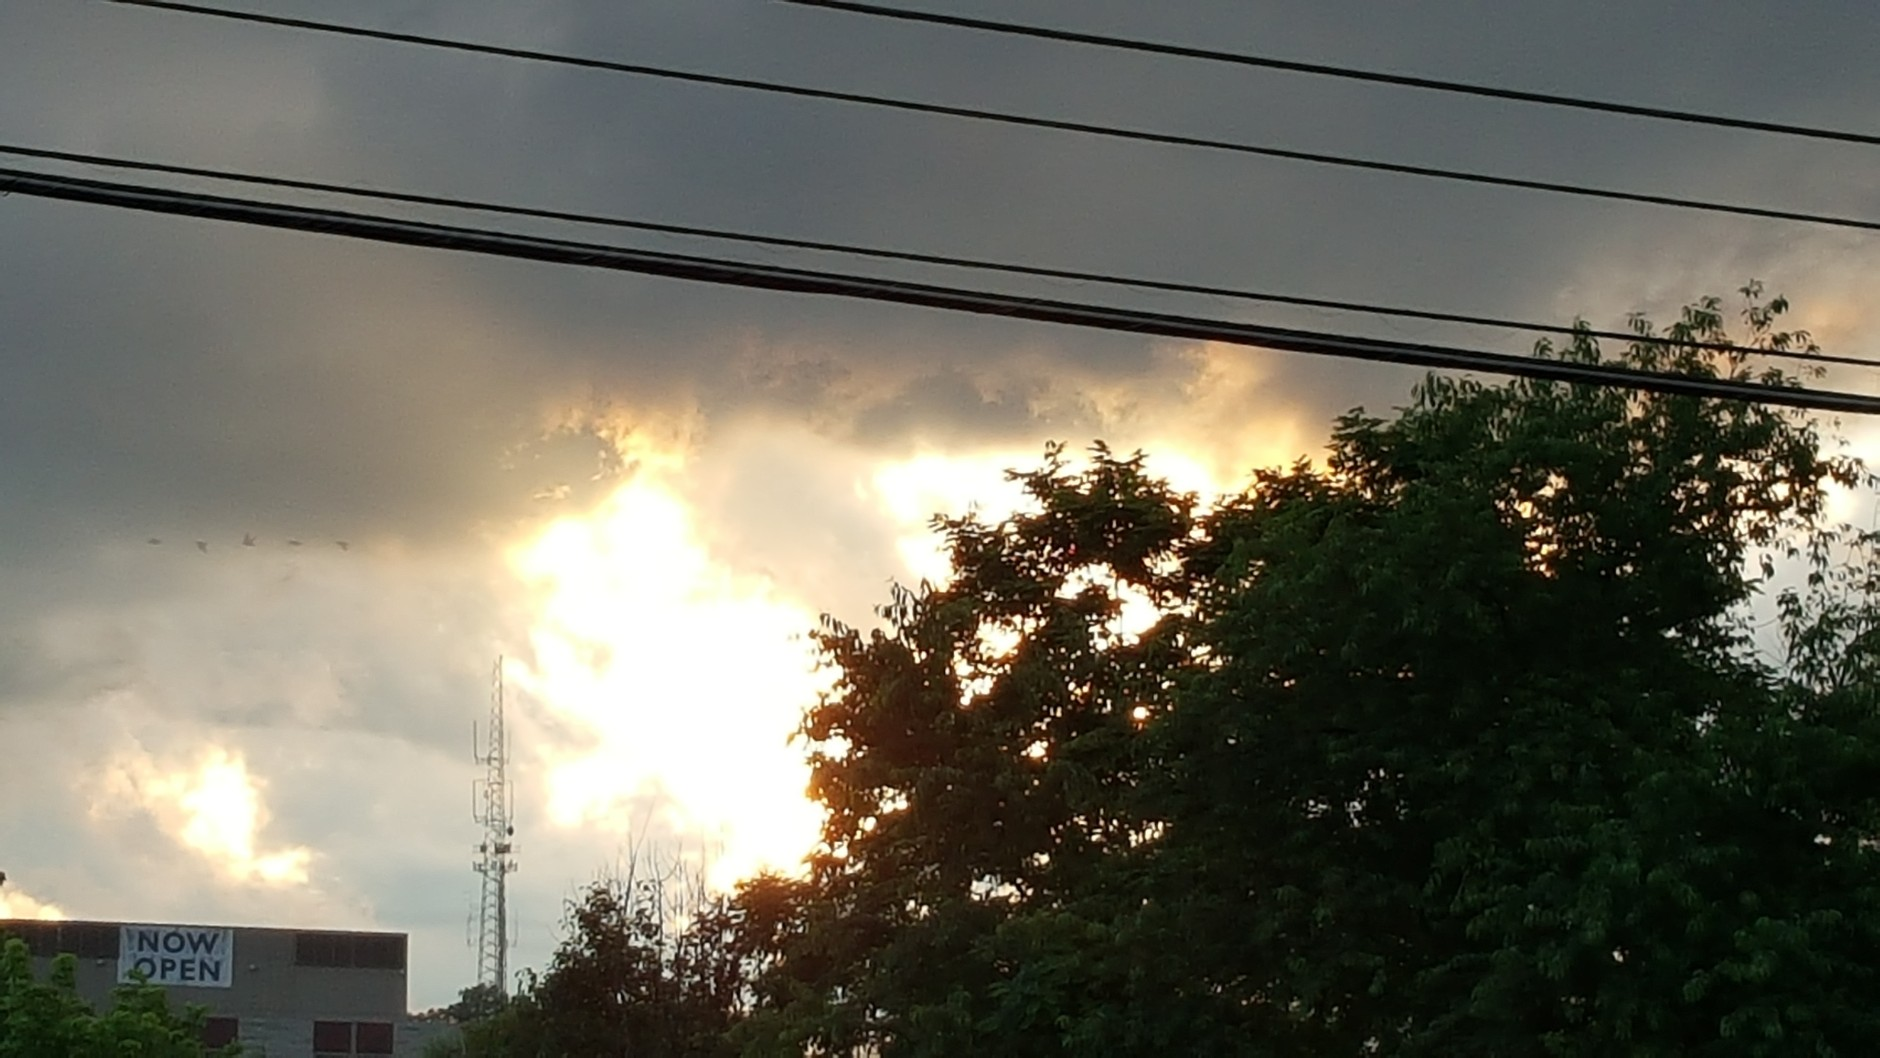 Post-storm in Middlebrook on June 21, 2016. (Courtesy Gail Estep)